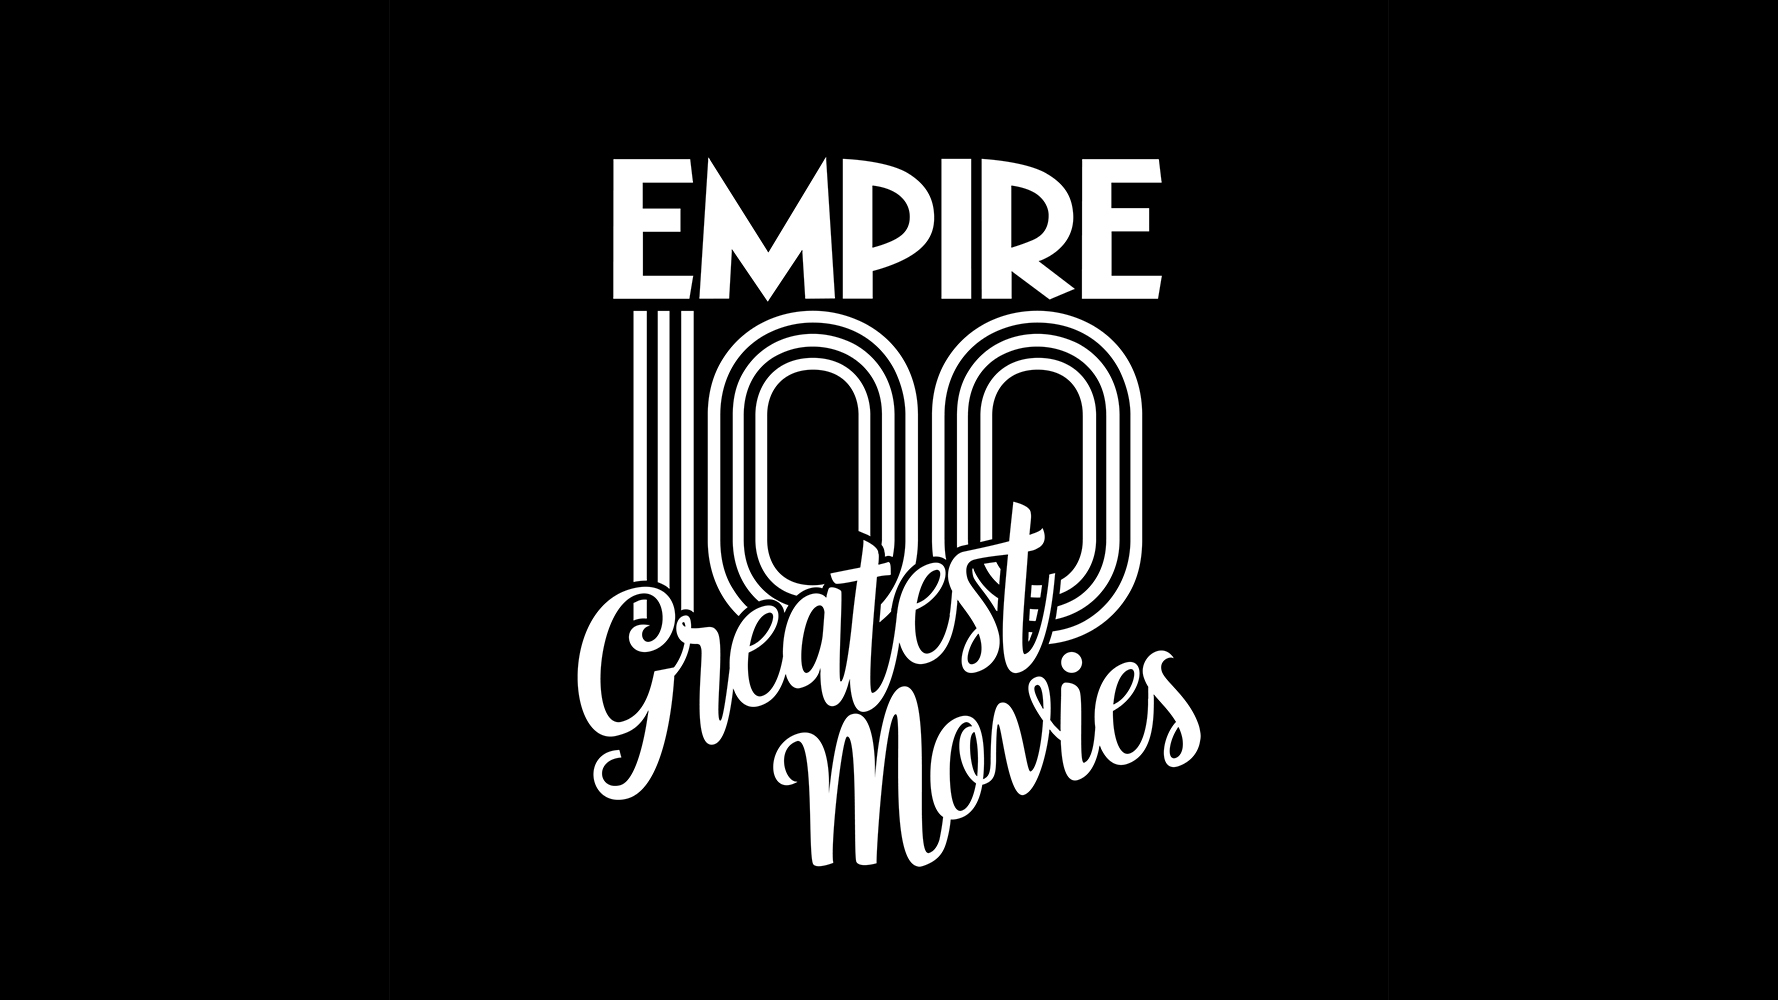 How many of Empire's 100 Greatest Movies have you seen?